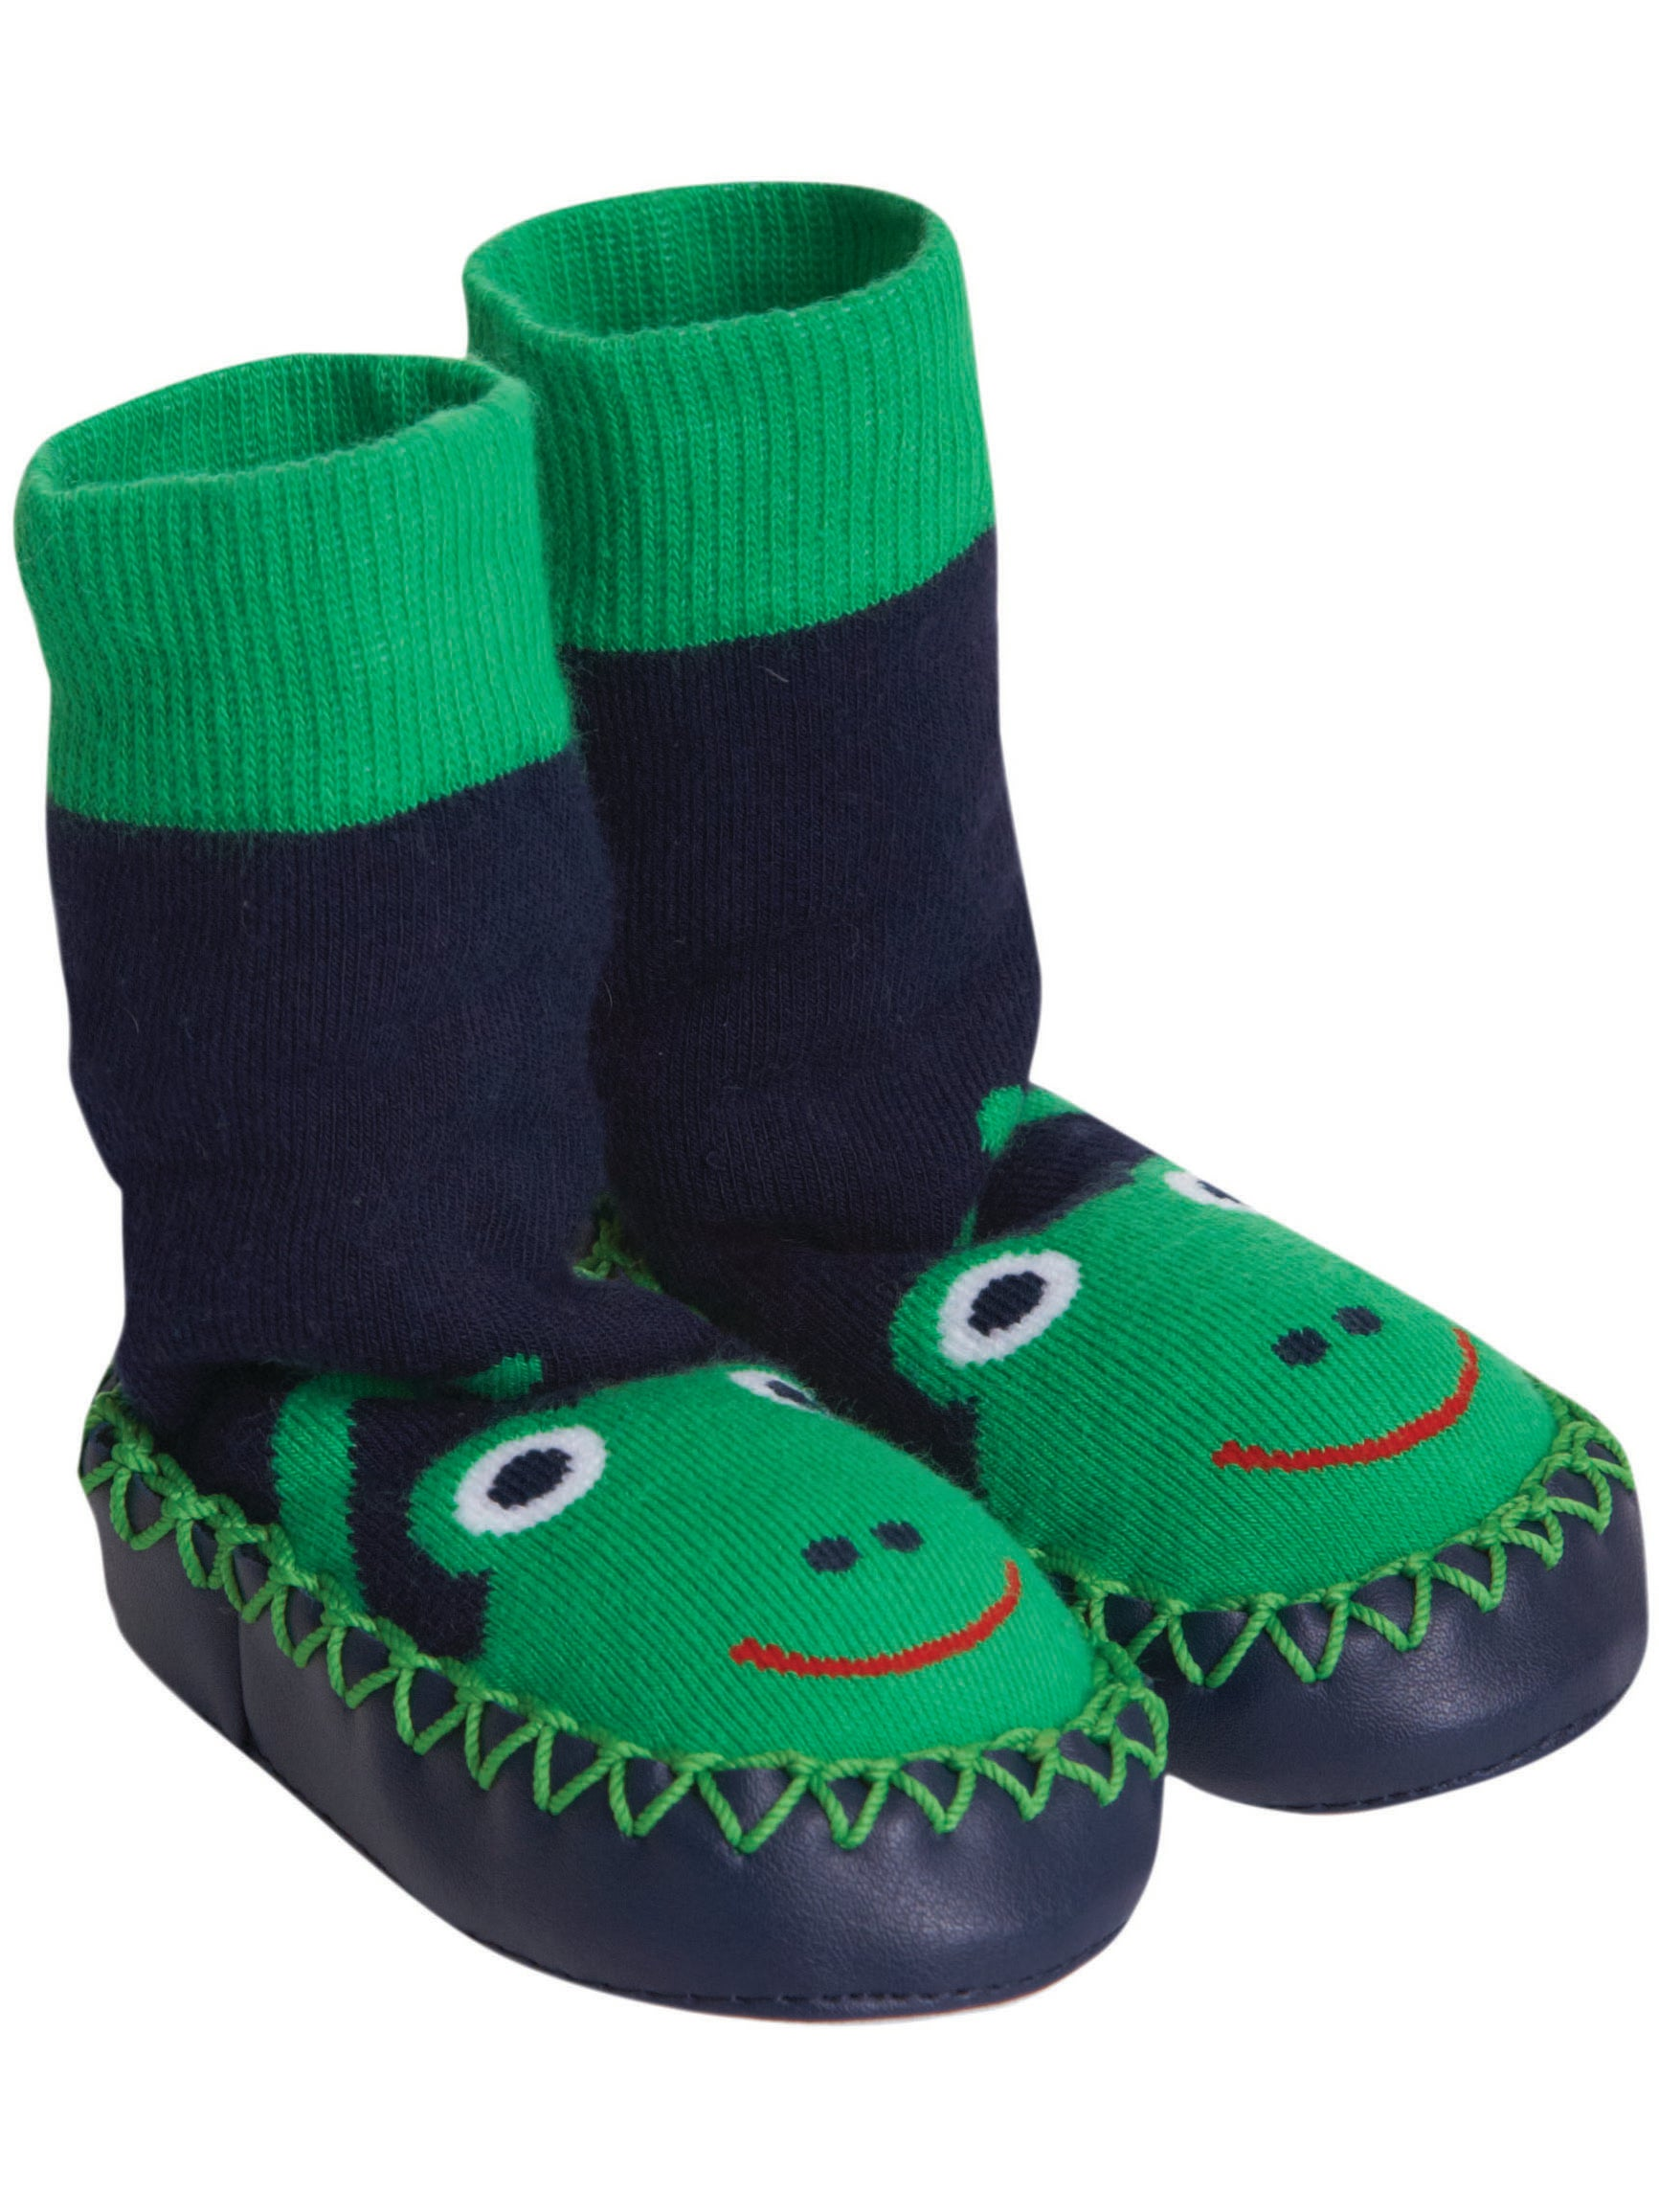 7 best slipper socks for toddlers | The Independent